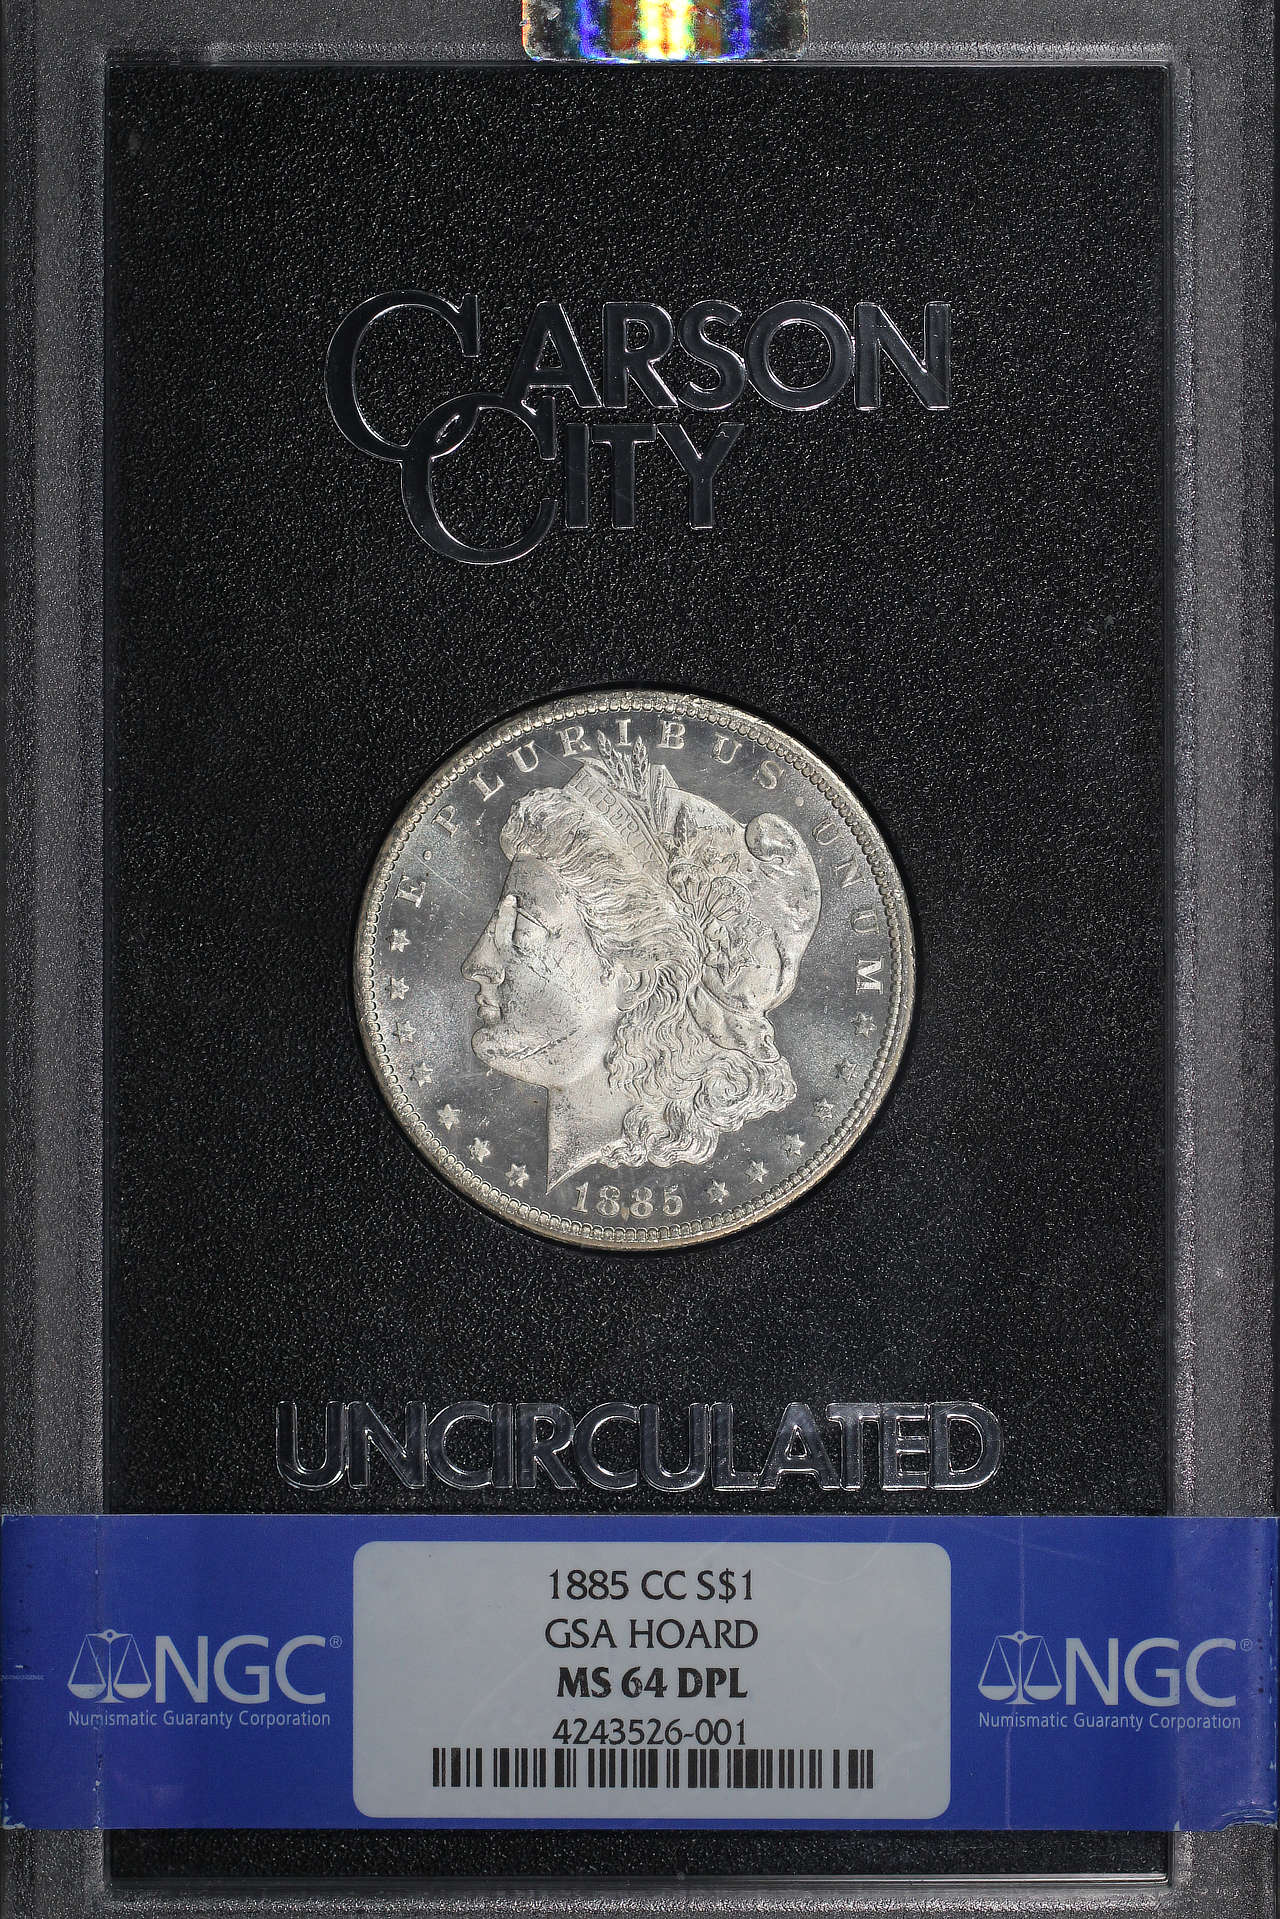 Obverse of 1885-CC GSA Morgan Dollar NGC MS-64 DPL